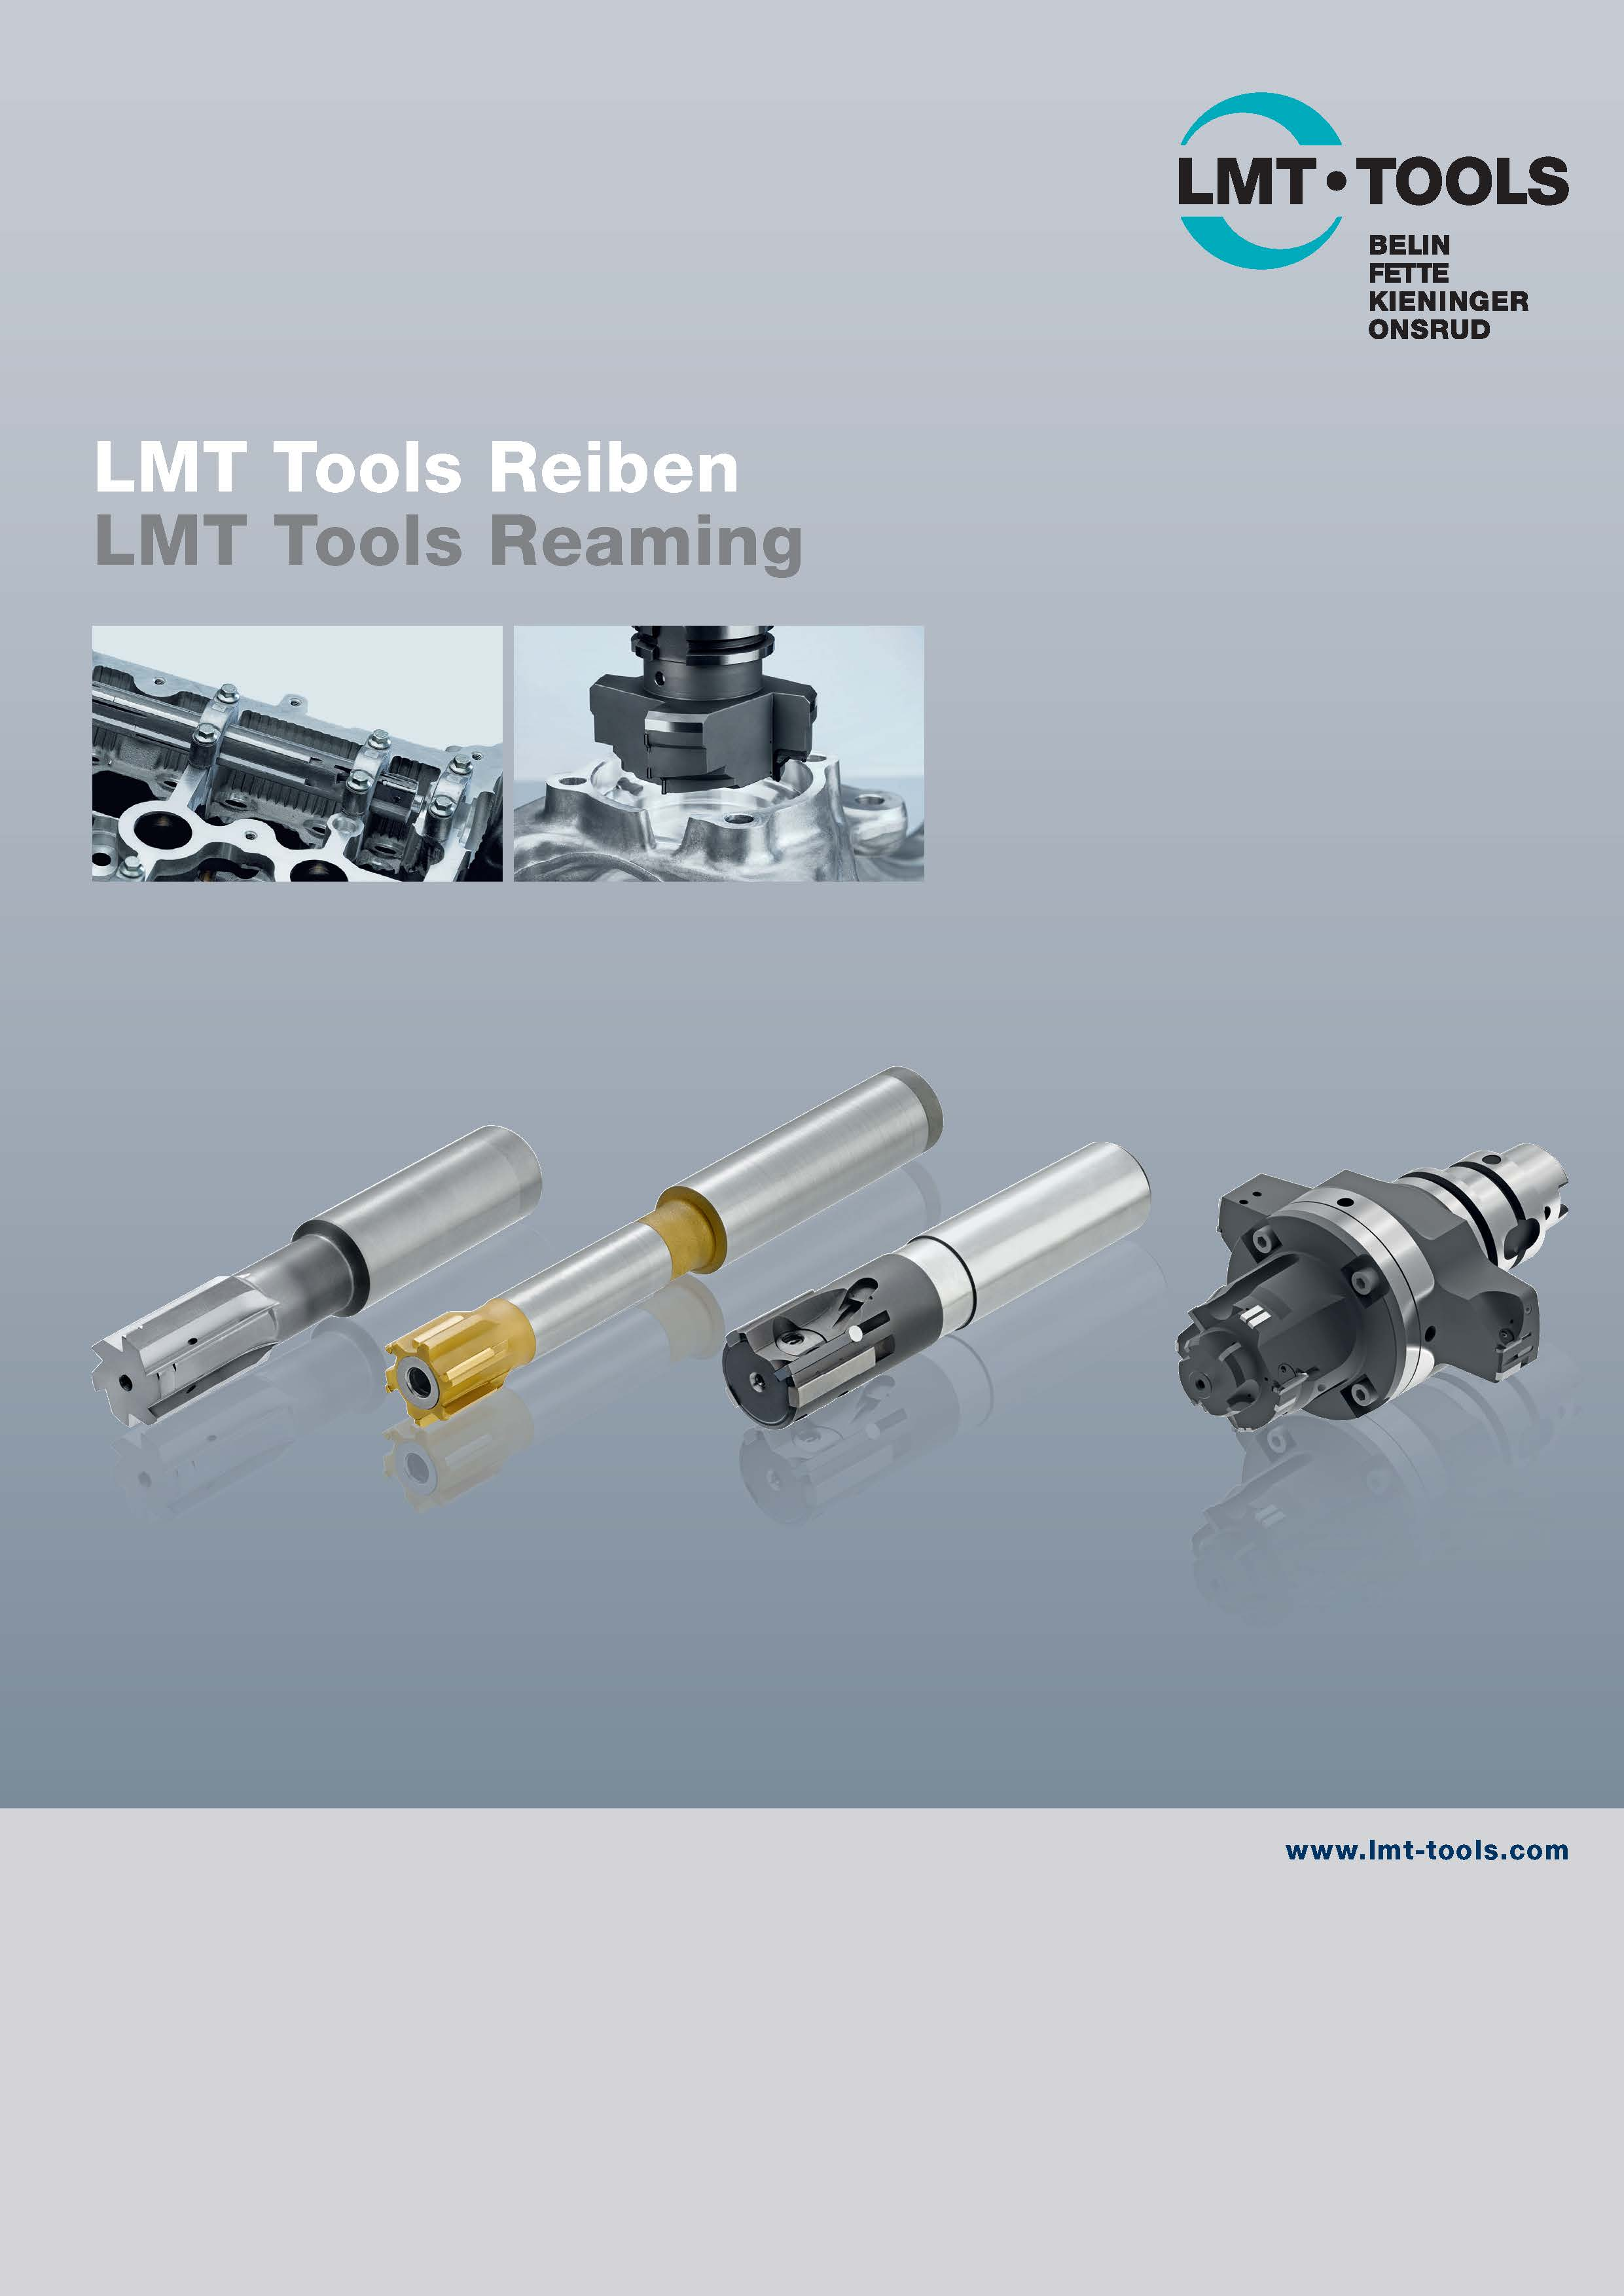 LMT Tools Reaming